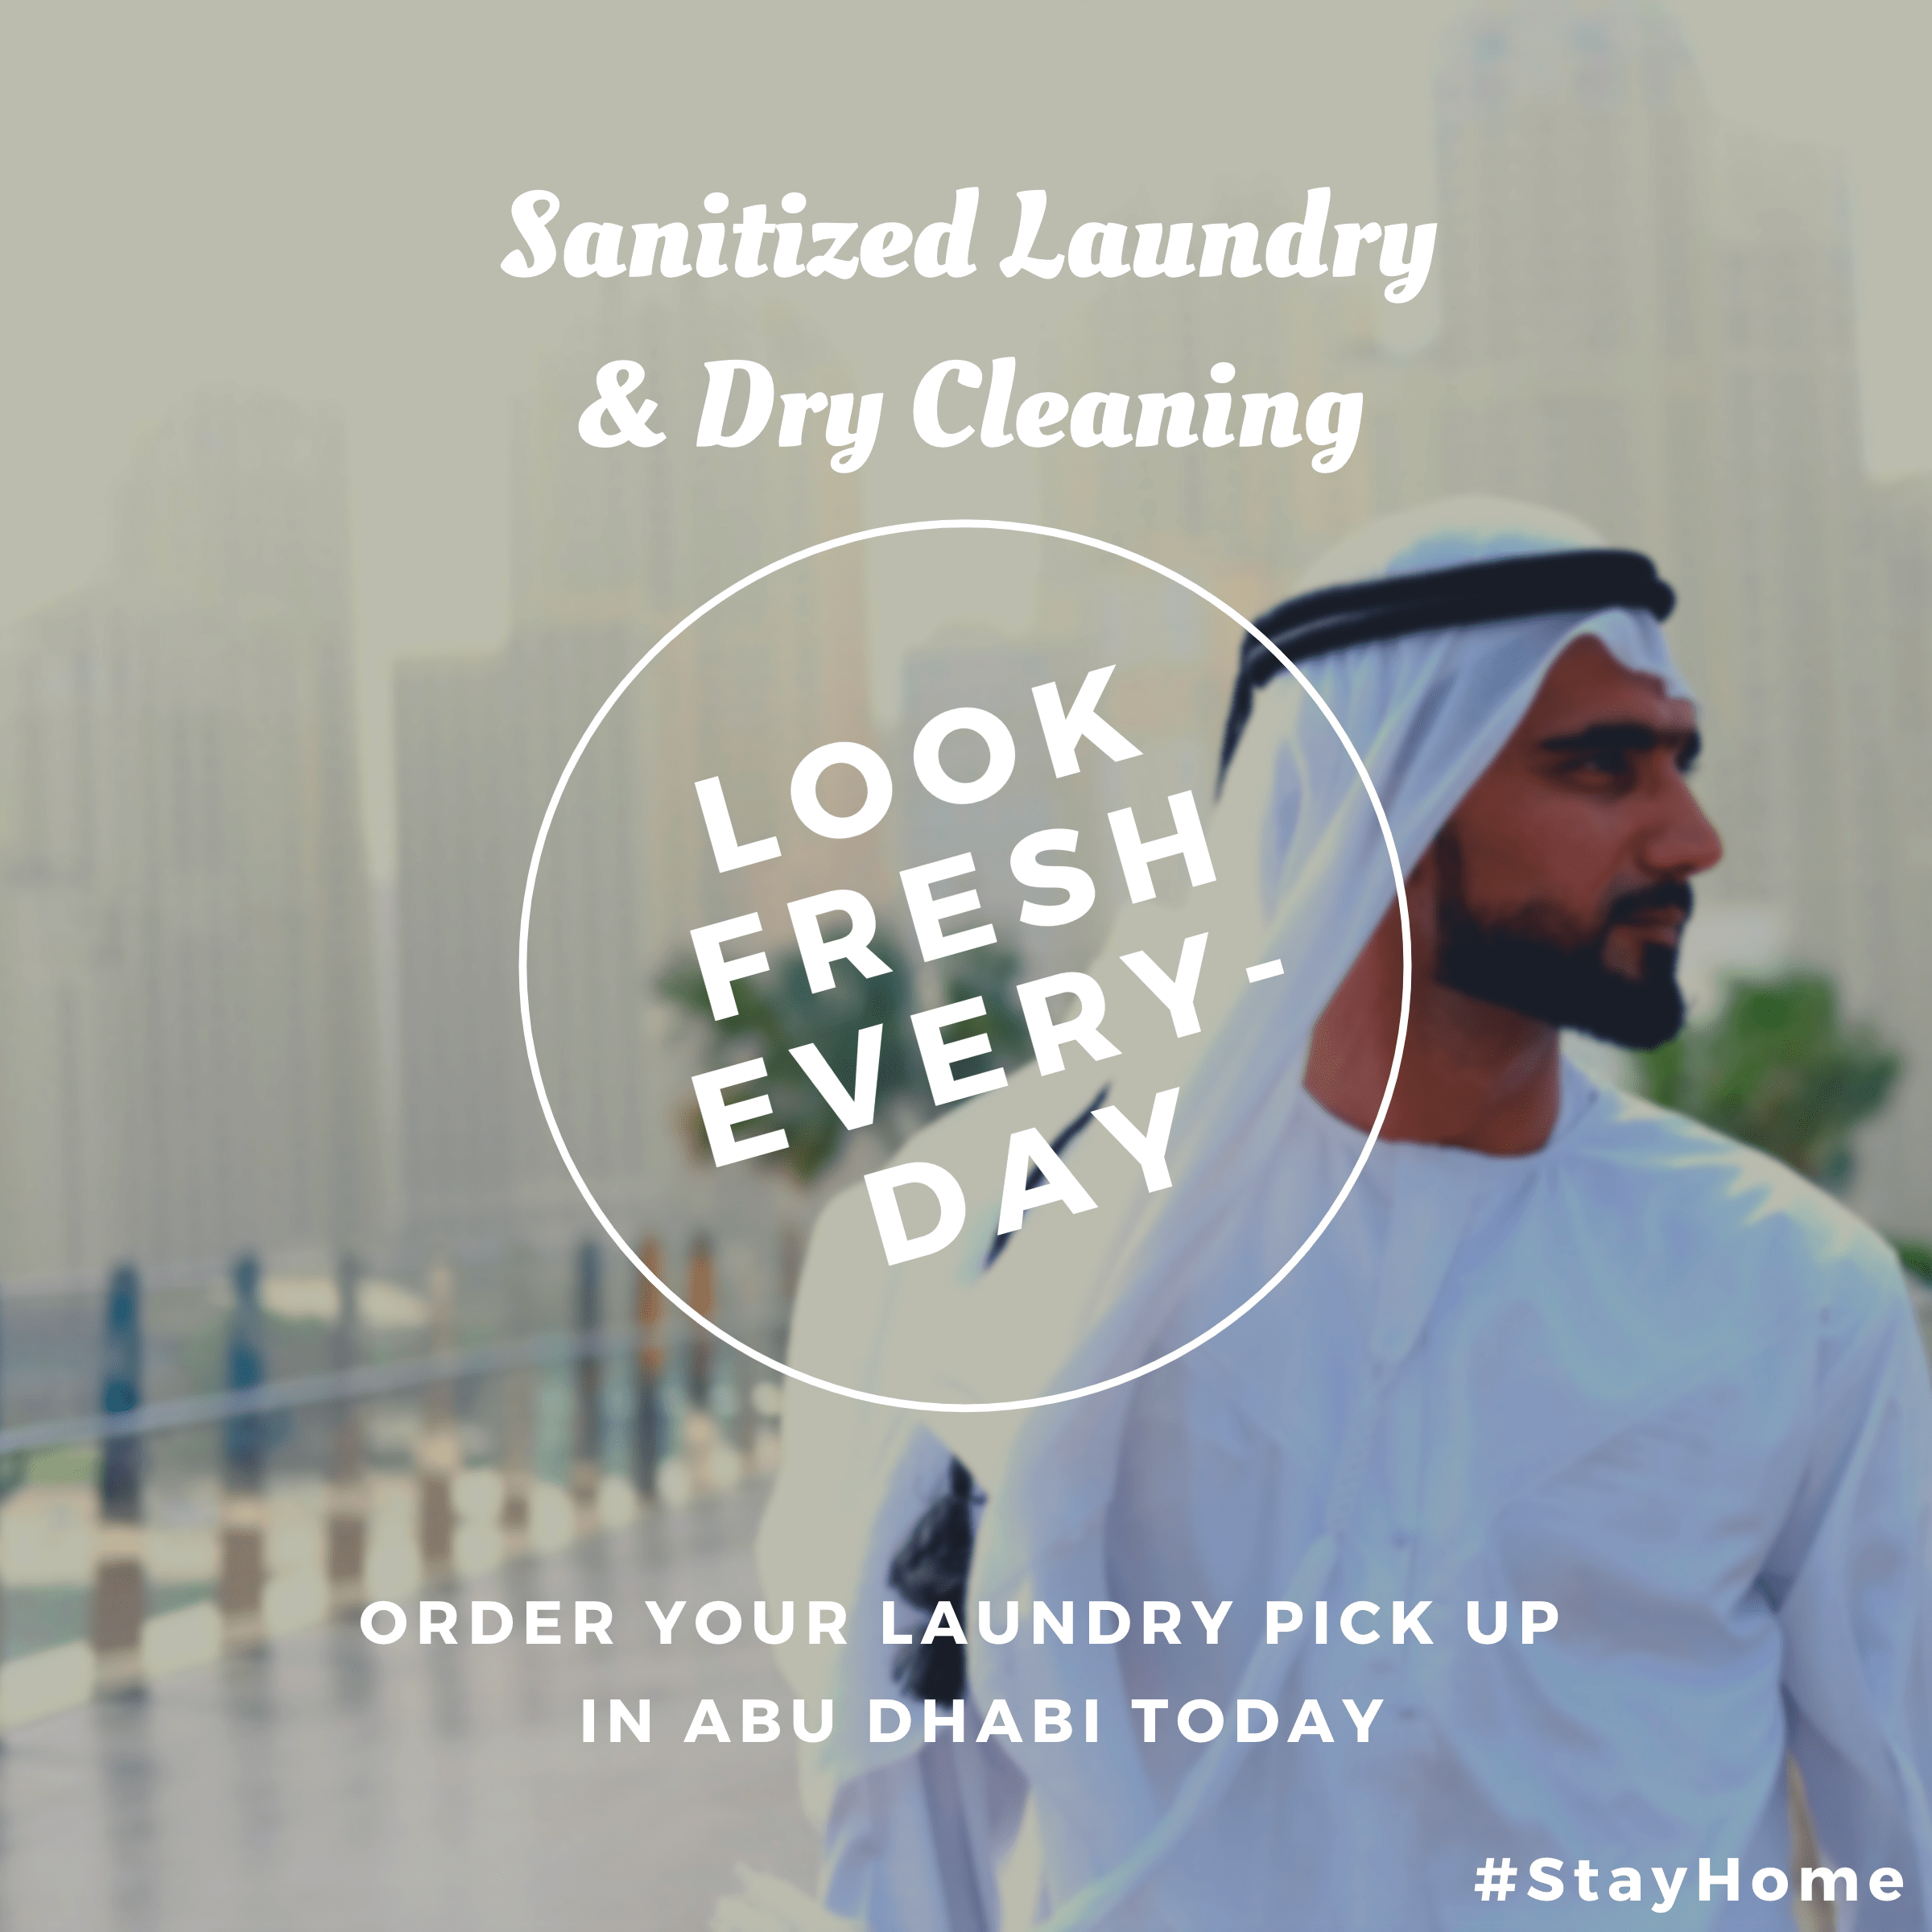 Sanitized dry cleaning in Abu Dhabi